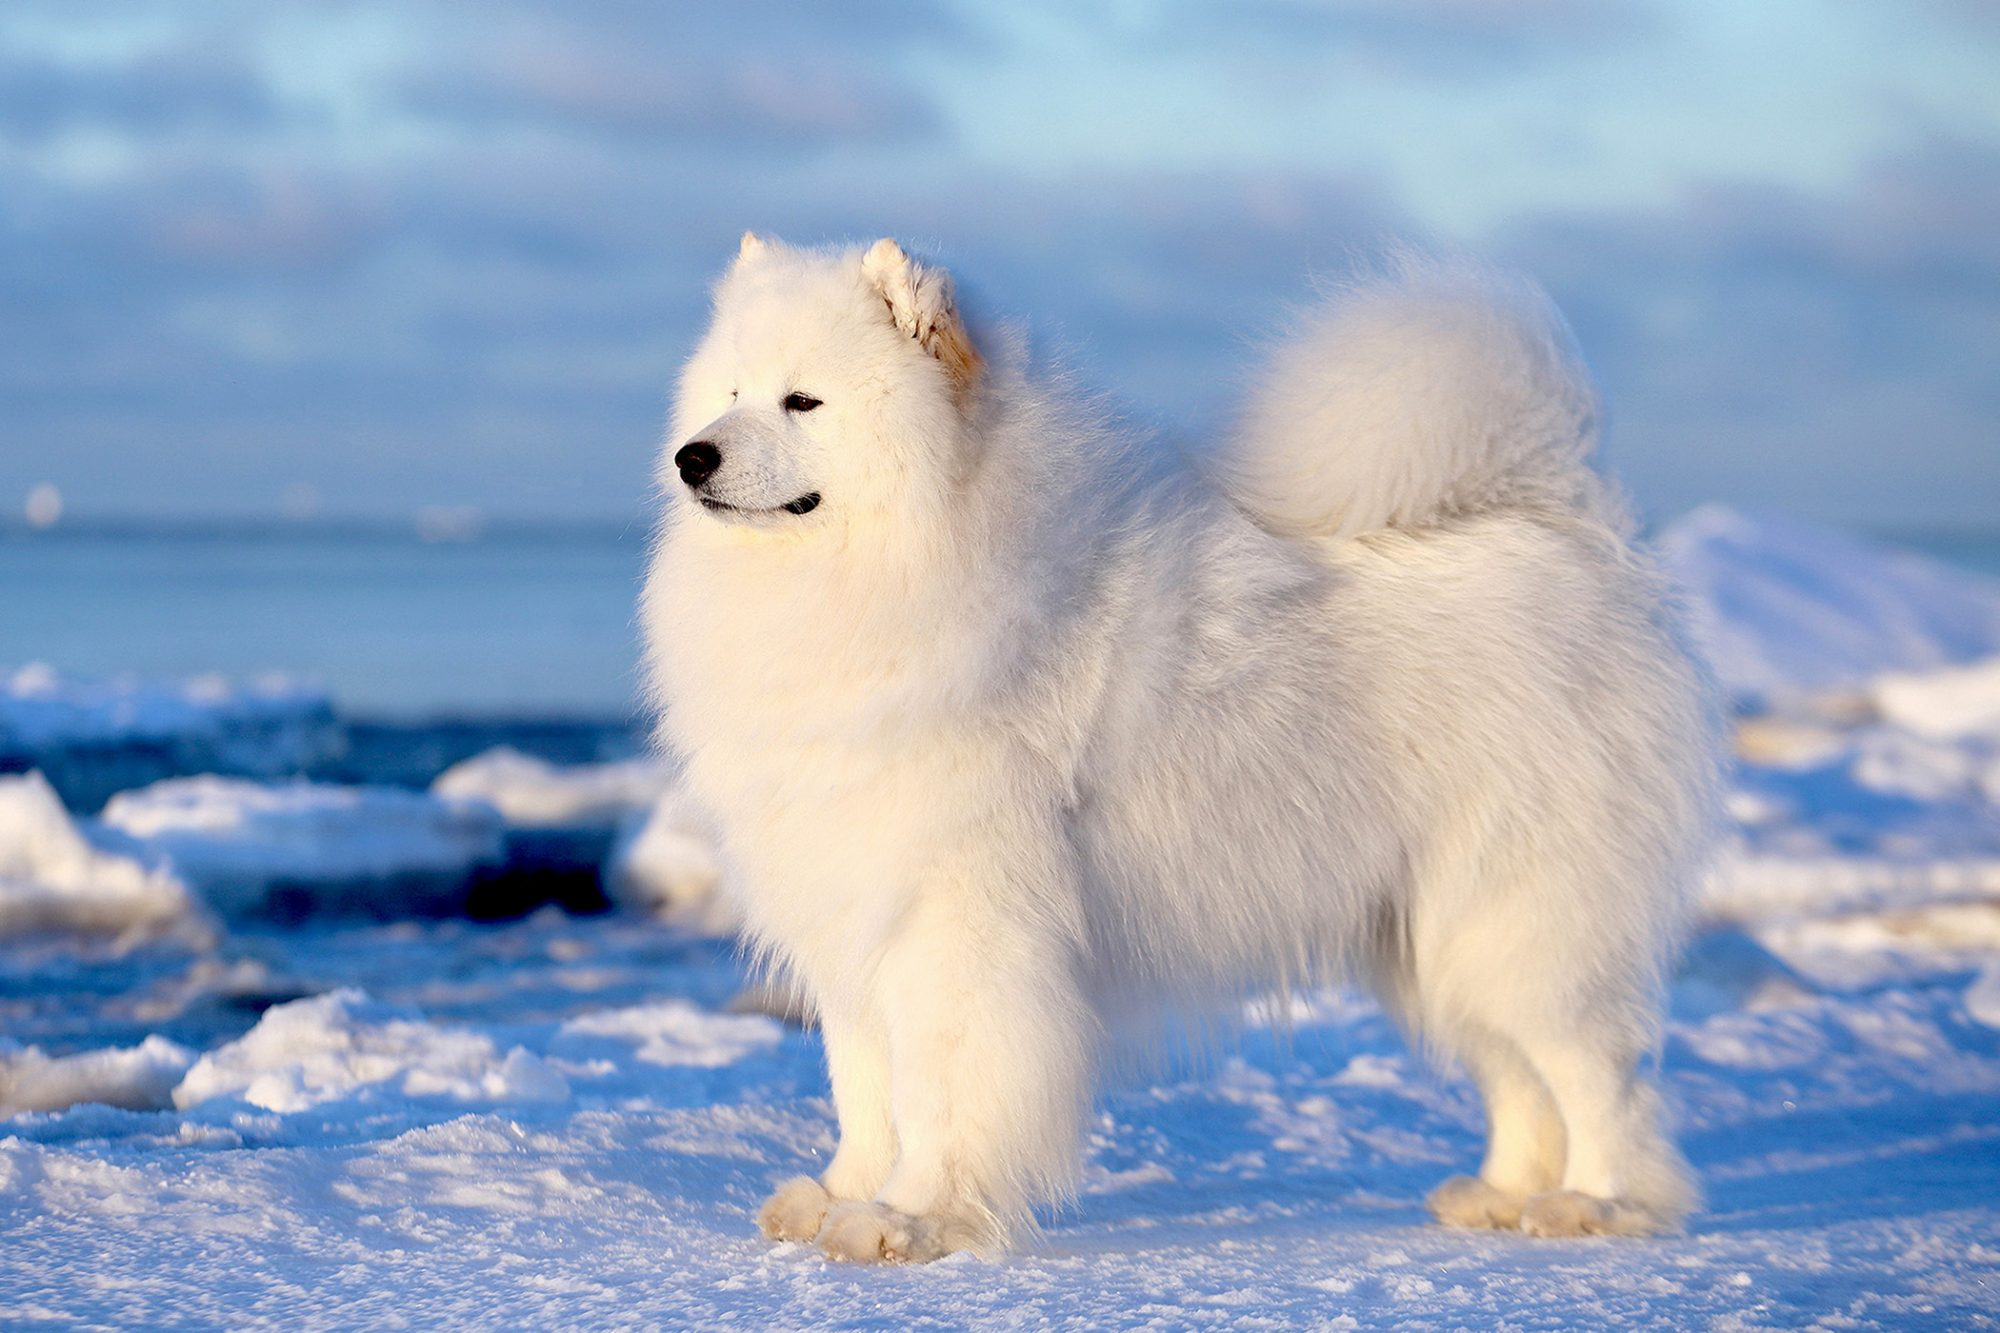 Adult samoyed dog stands on snowy ground, profile view